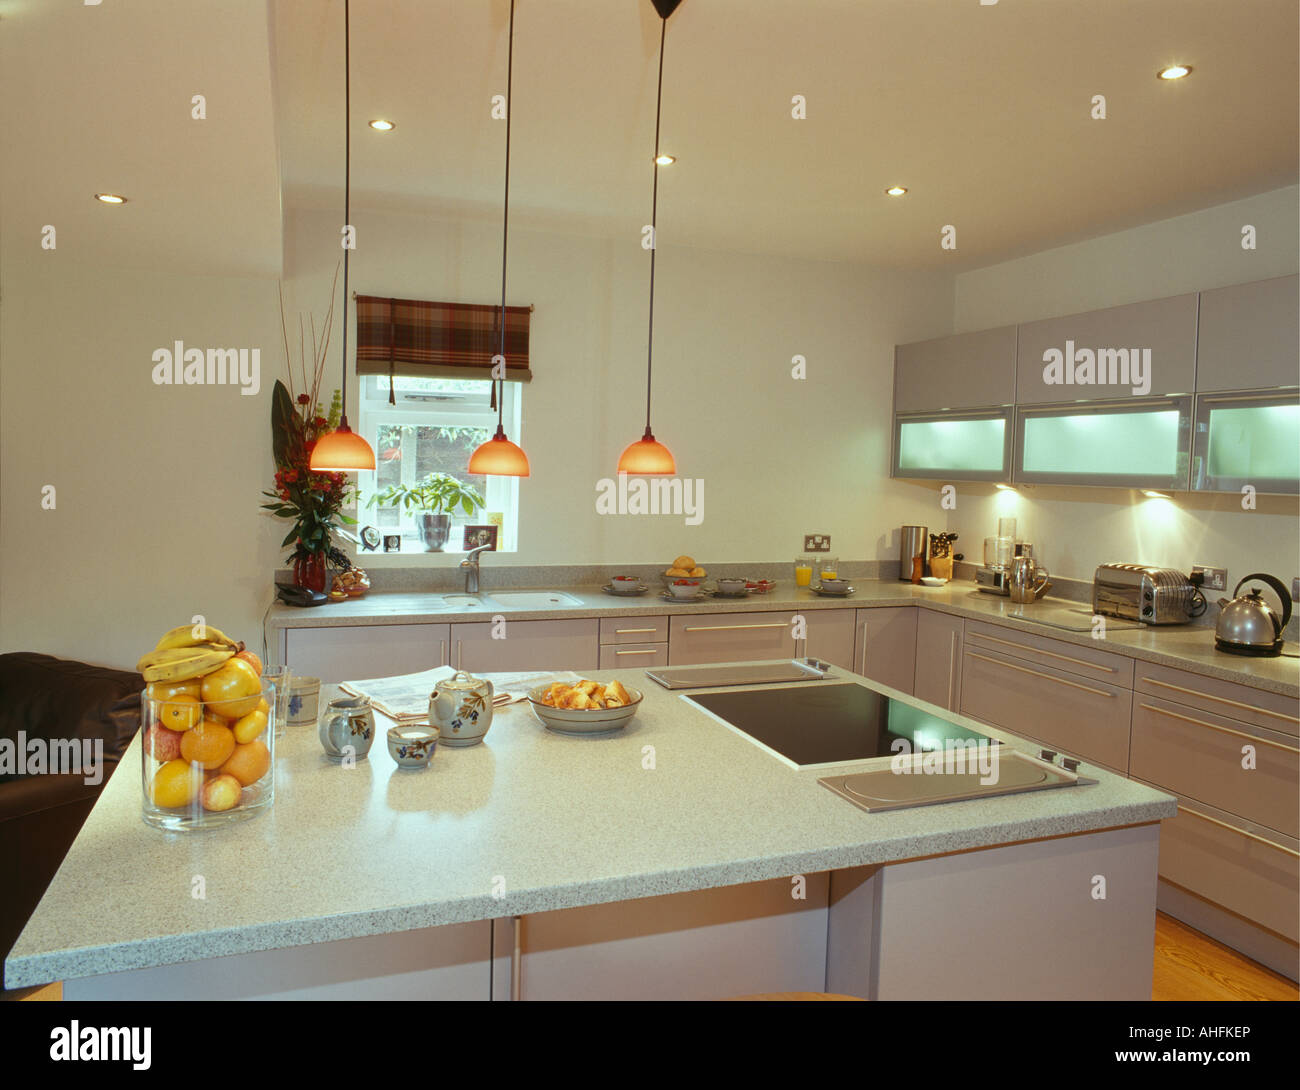 Pendant Lights Over Island Unit With Halogen Hob And Oranges In - Pendulum lights over island